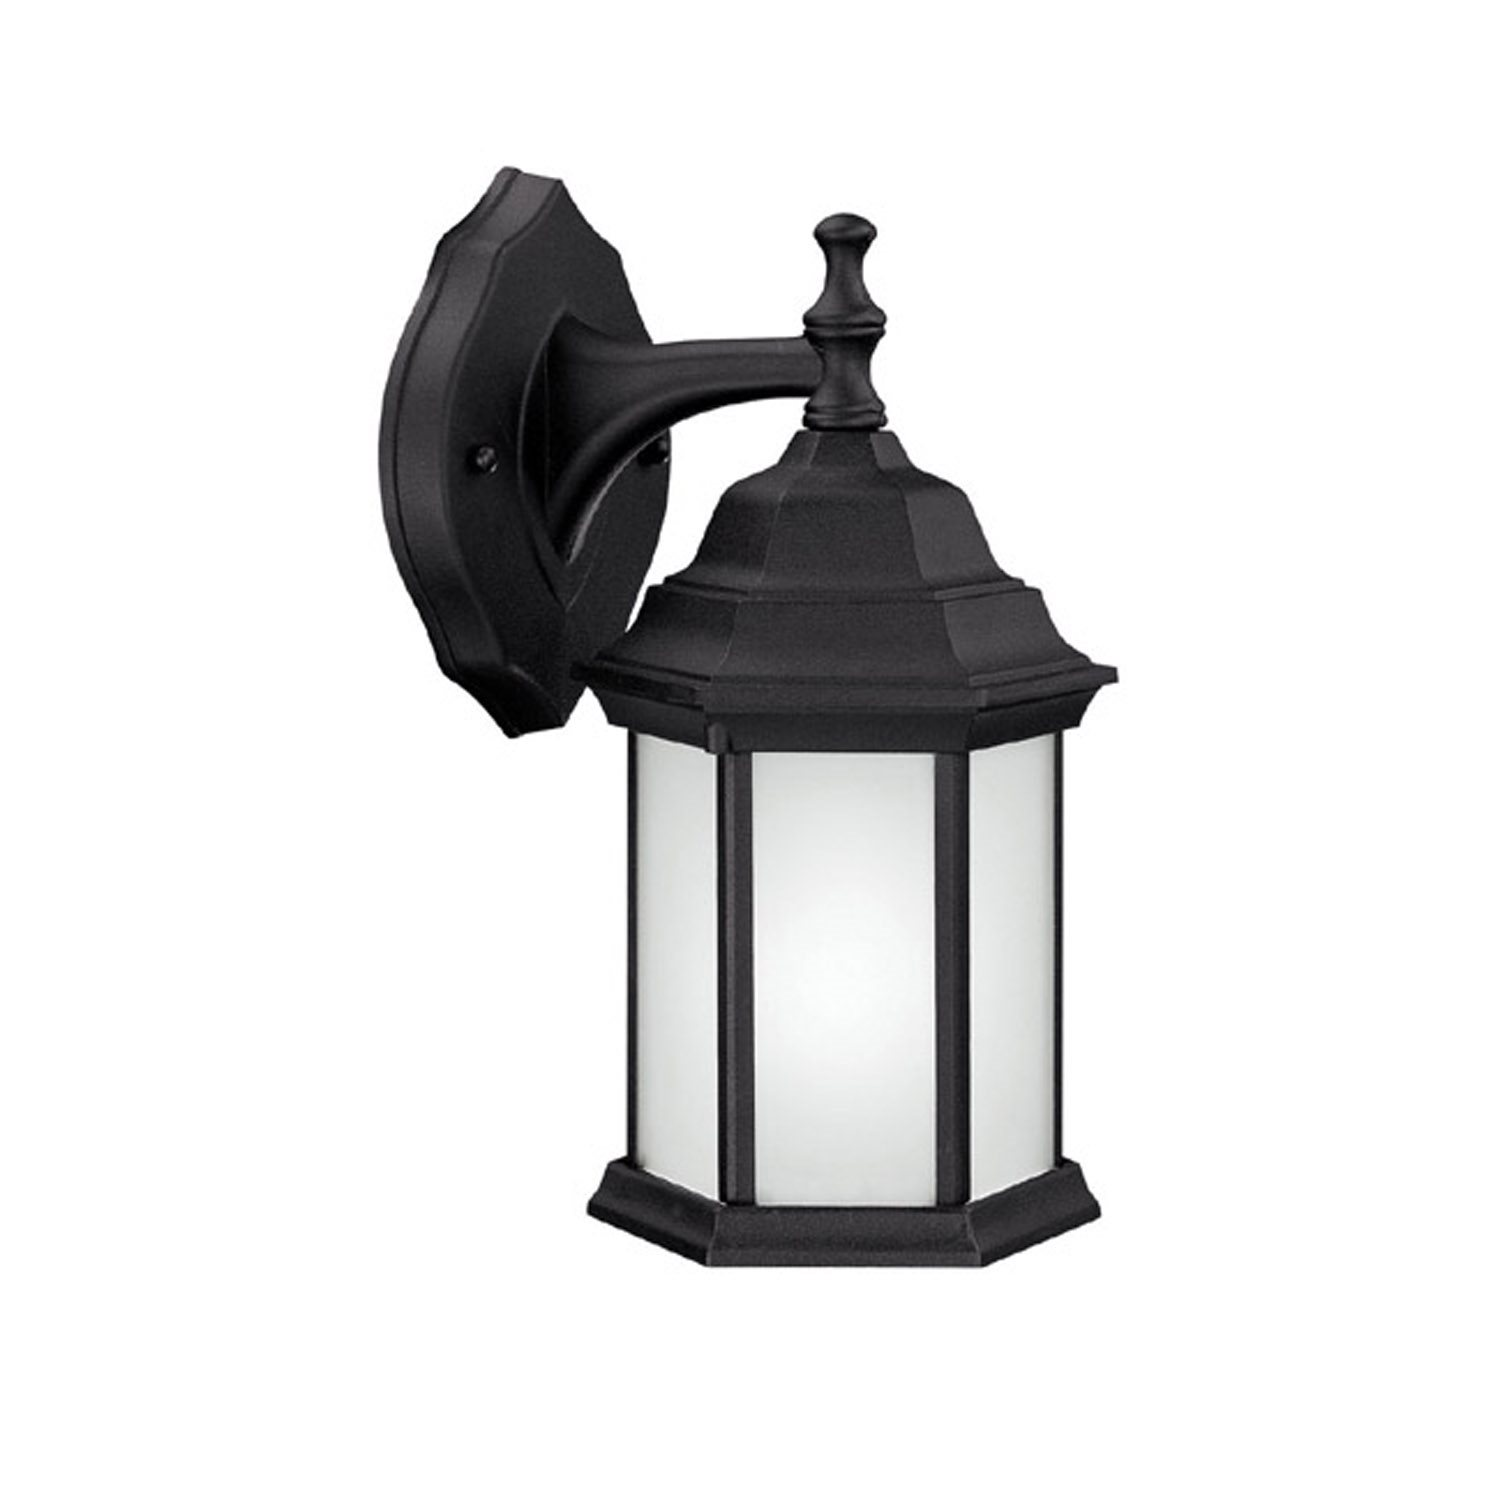 Capital Lighting 9830bk Gu Brookwood 13w Energy Efficient Traditional Outdoor Wall Sconce Cp